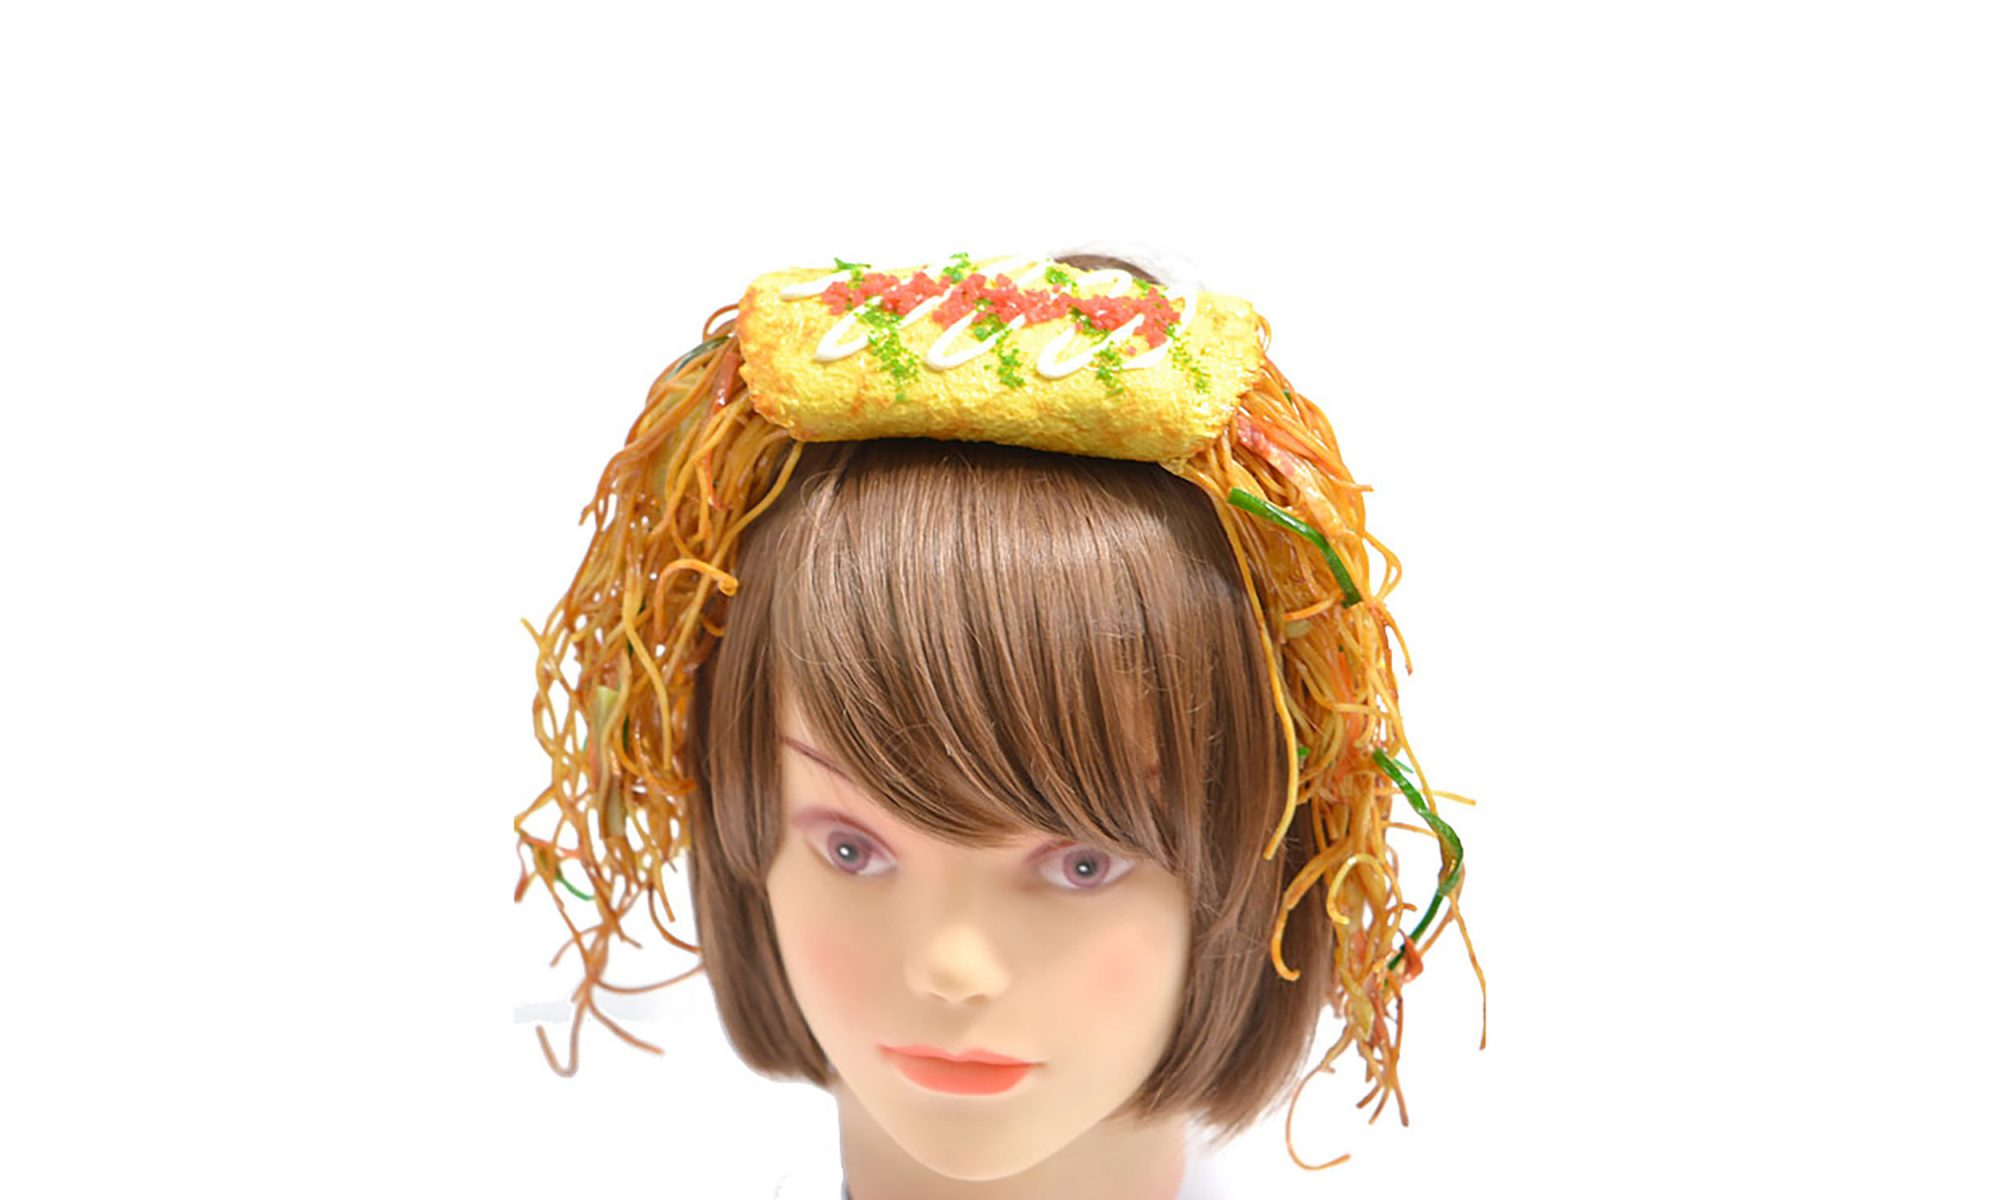 EC: Wear Your Breakfast with These Japanese Fake Food Accessories